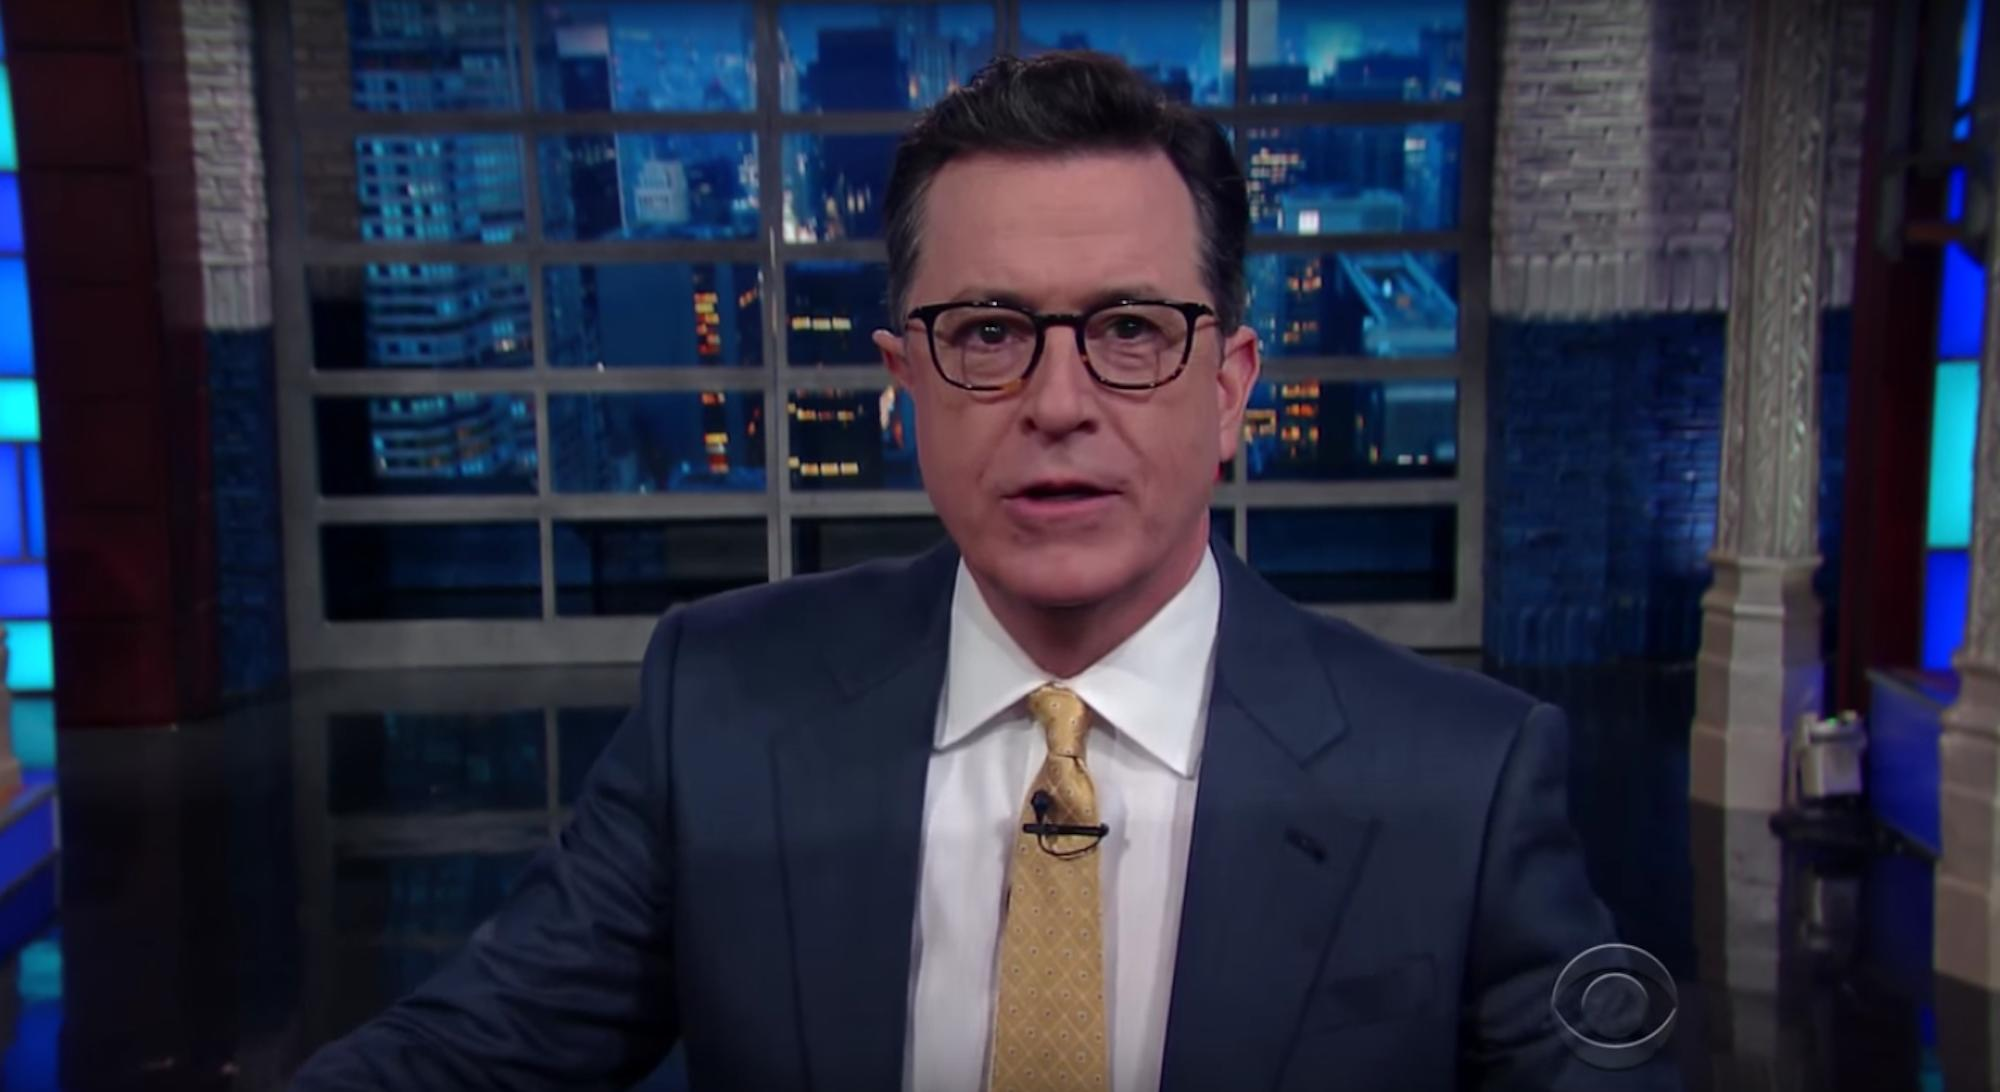 Stephen Colbert teases Trump for inauguration crowd size